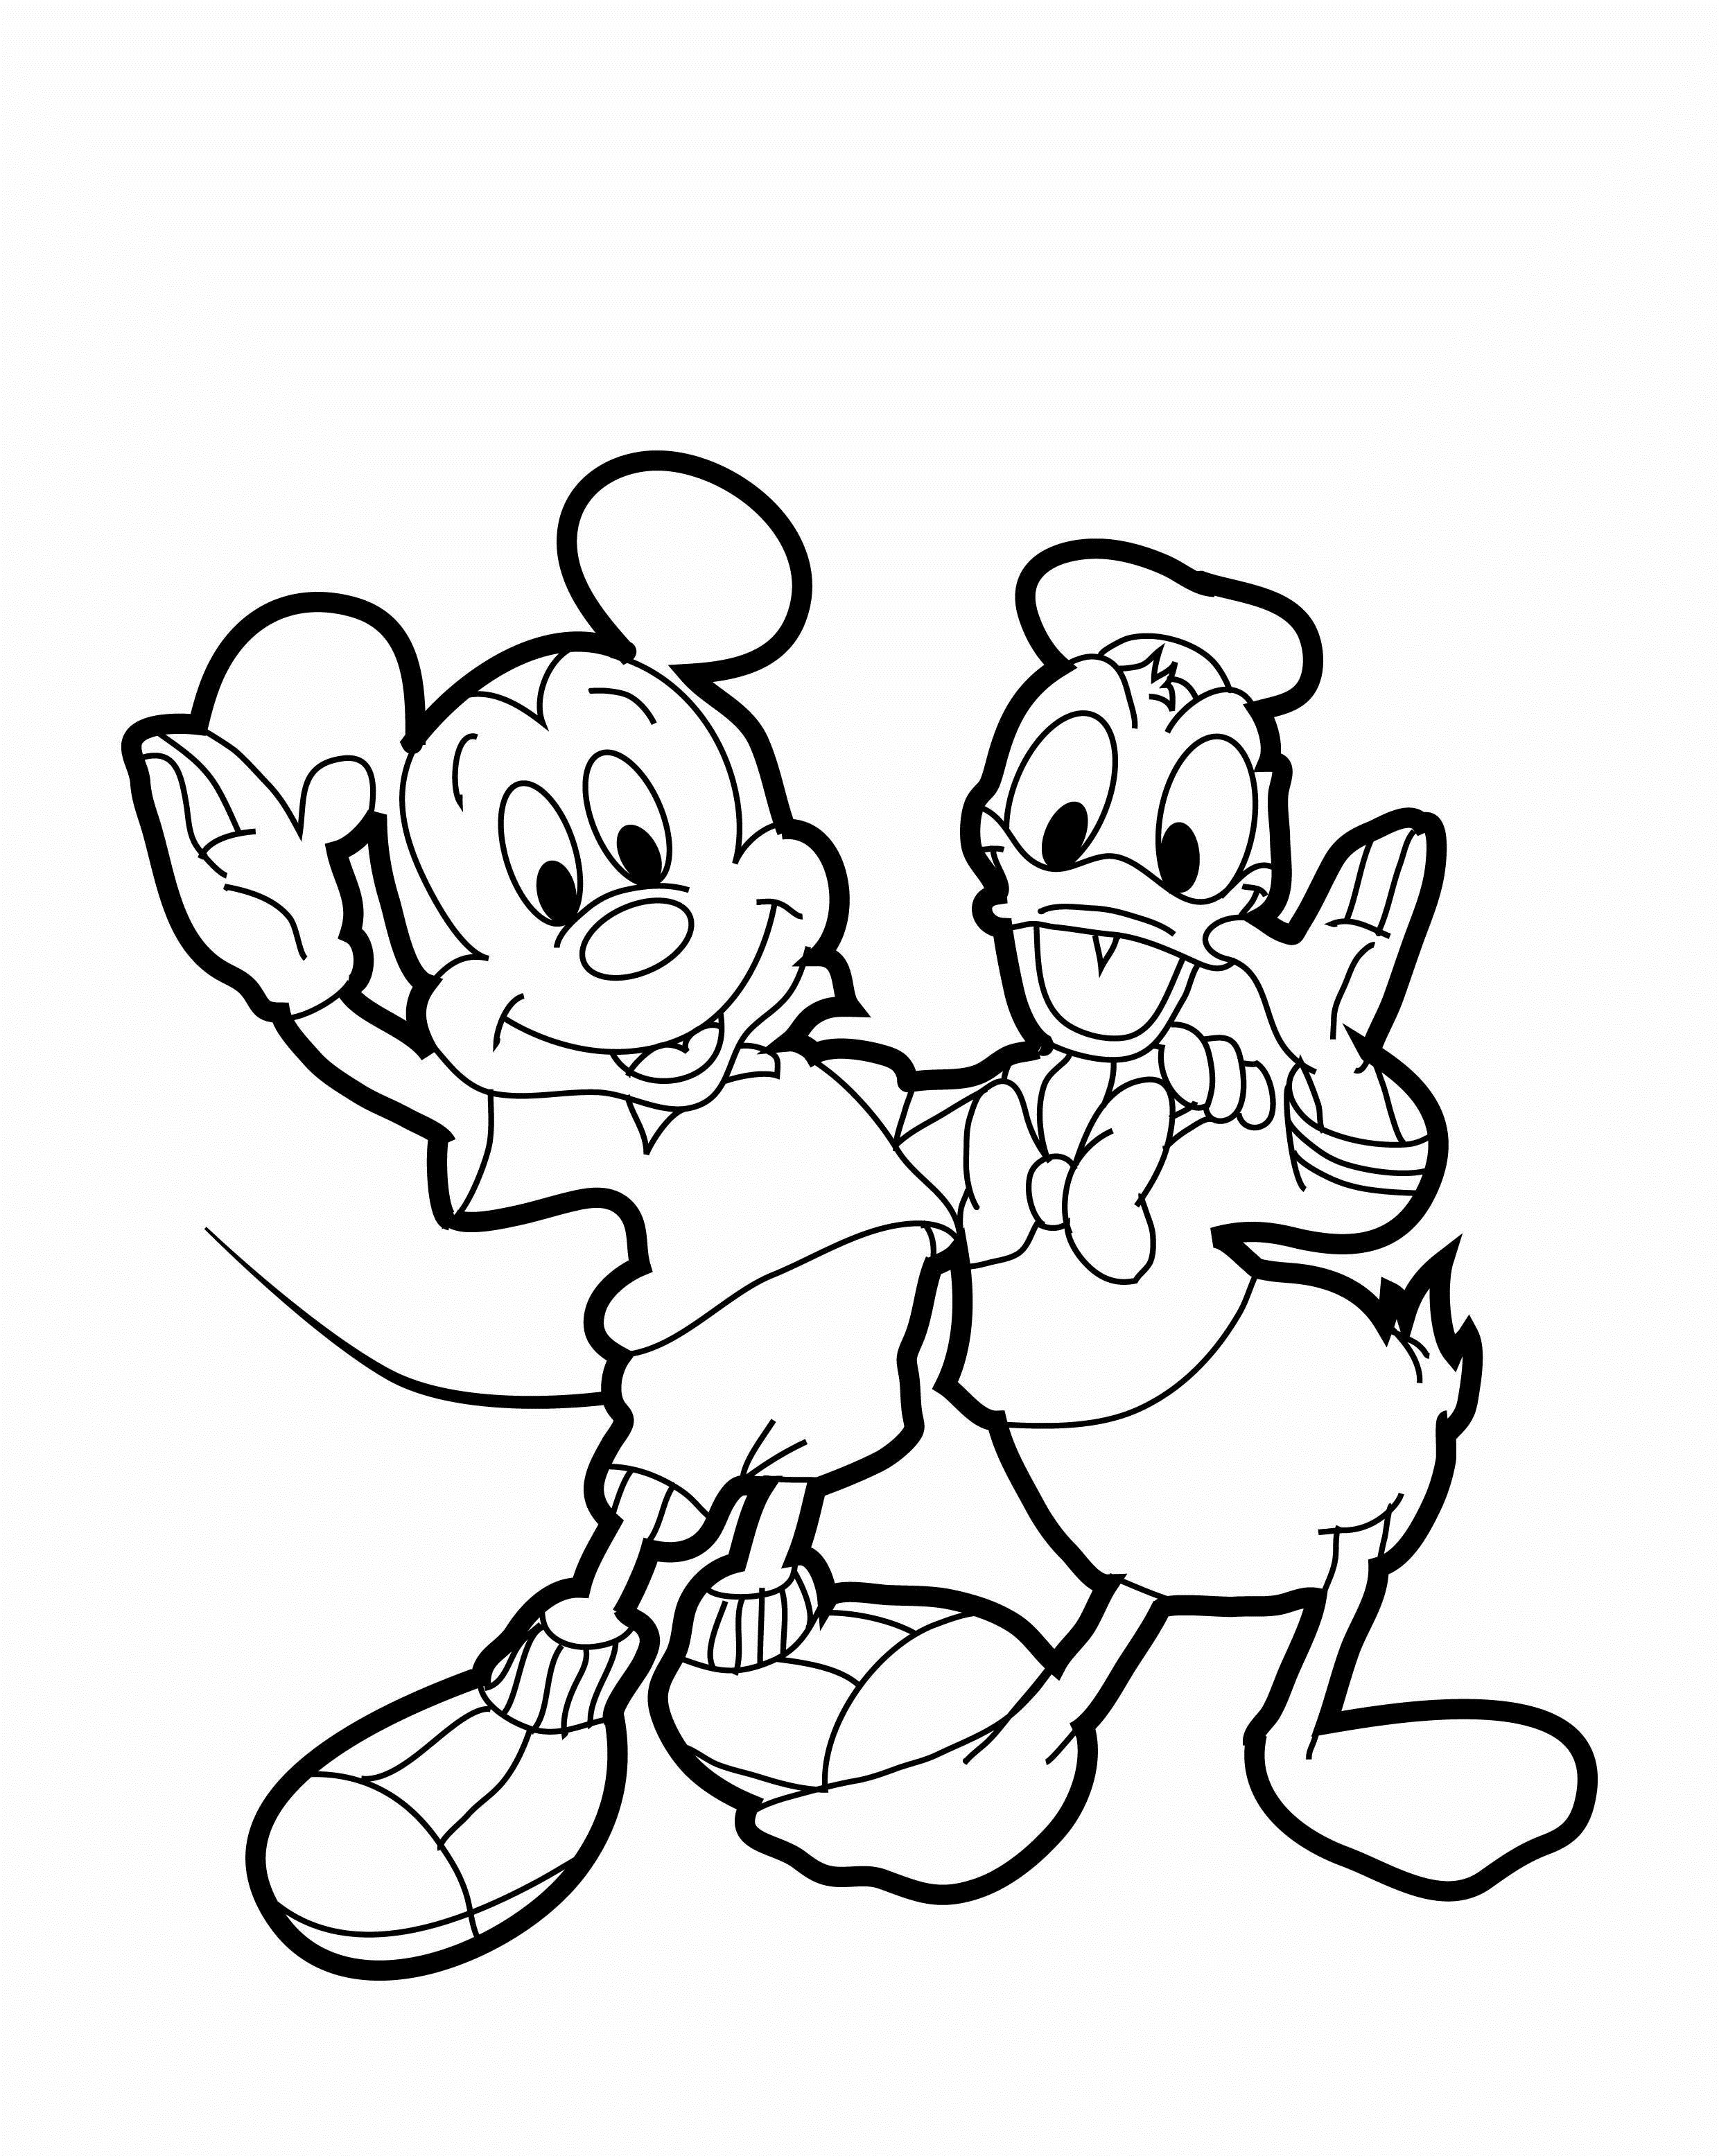 Coloring games donald duck - Donald Duck Coloring Sheets